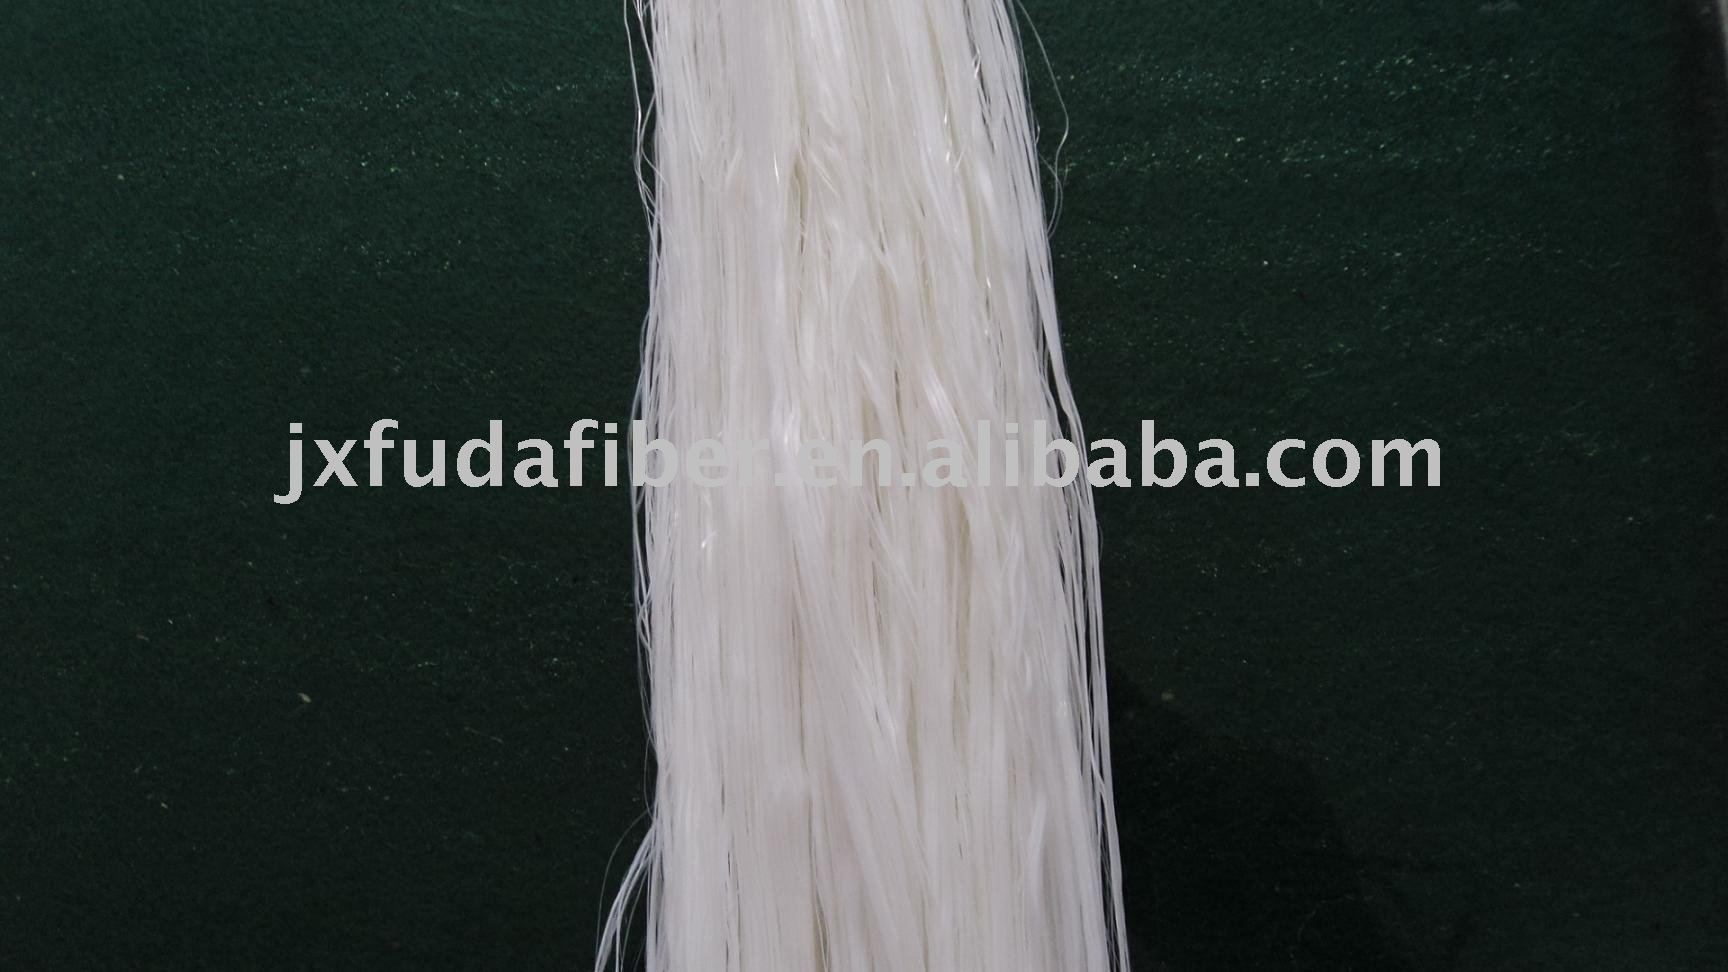 3.3dex virgin white polyester tow